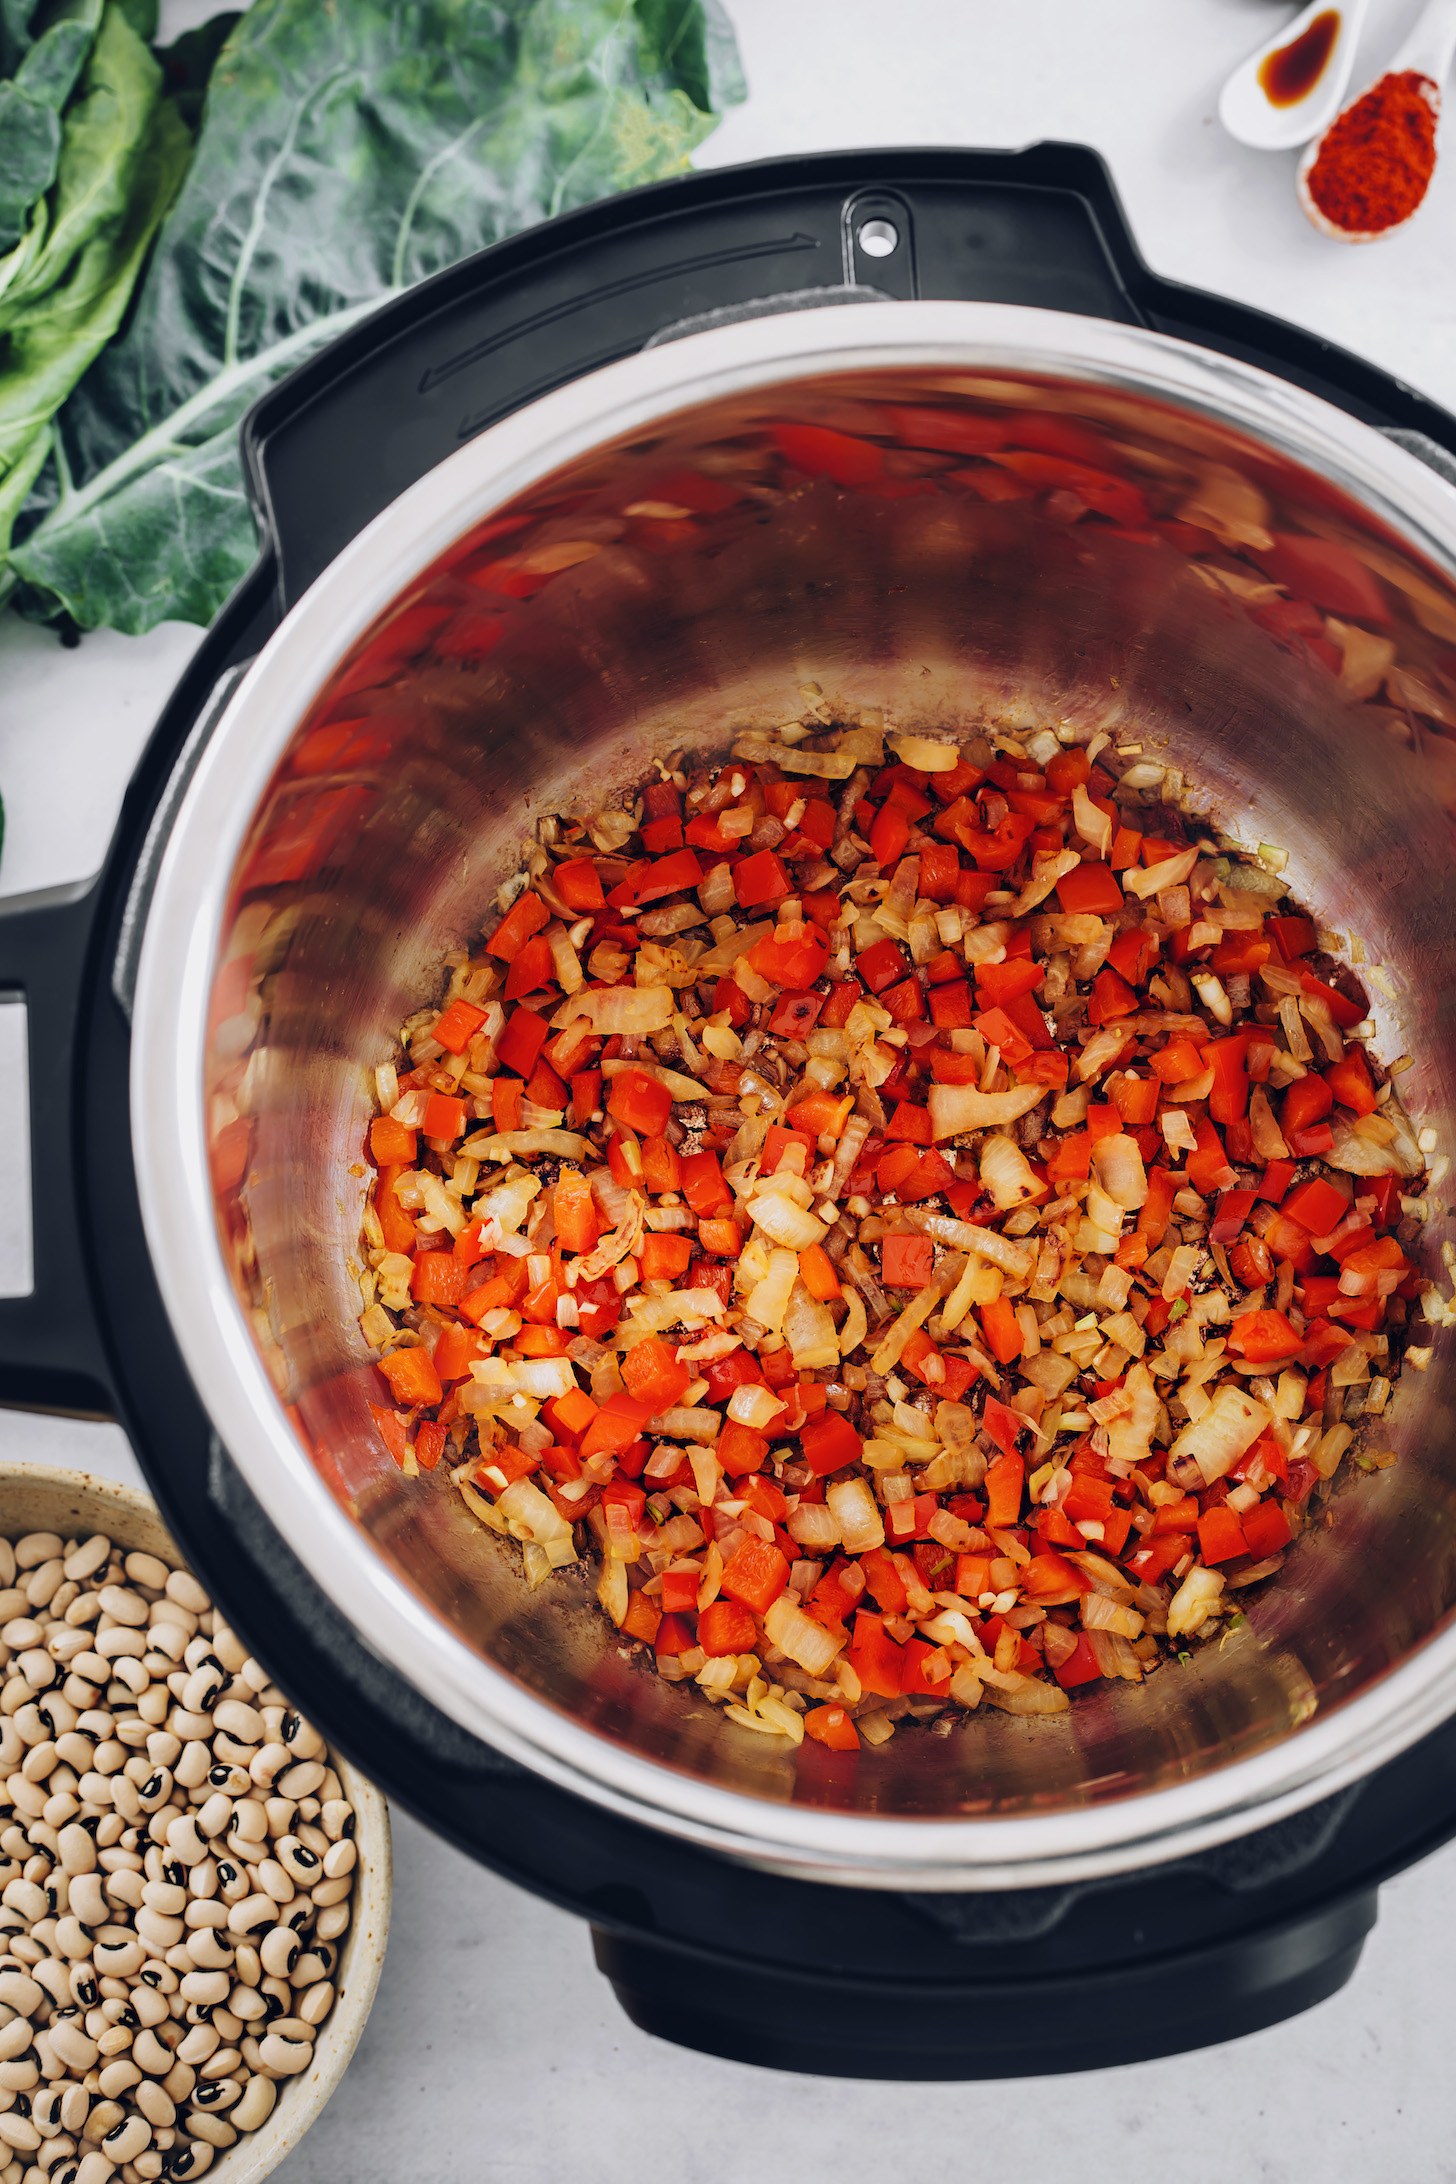 Bowl of black eyed peas next to an Instant Pot of sautéed onion and bell pepper